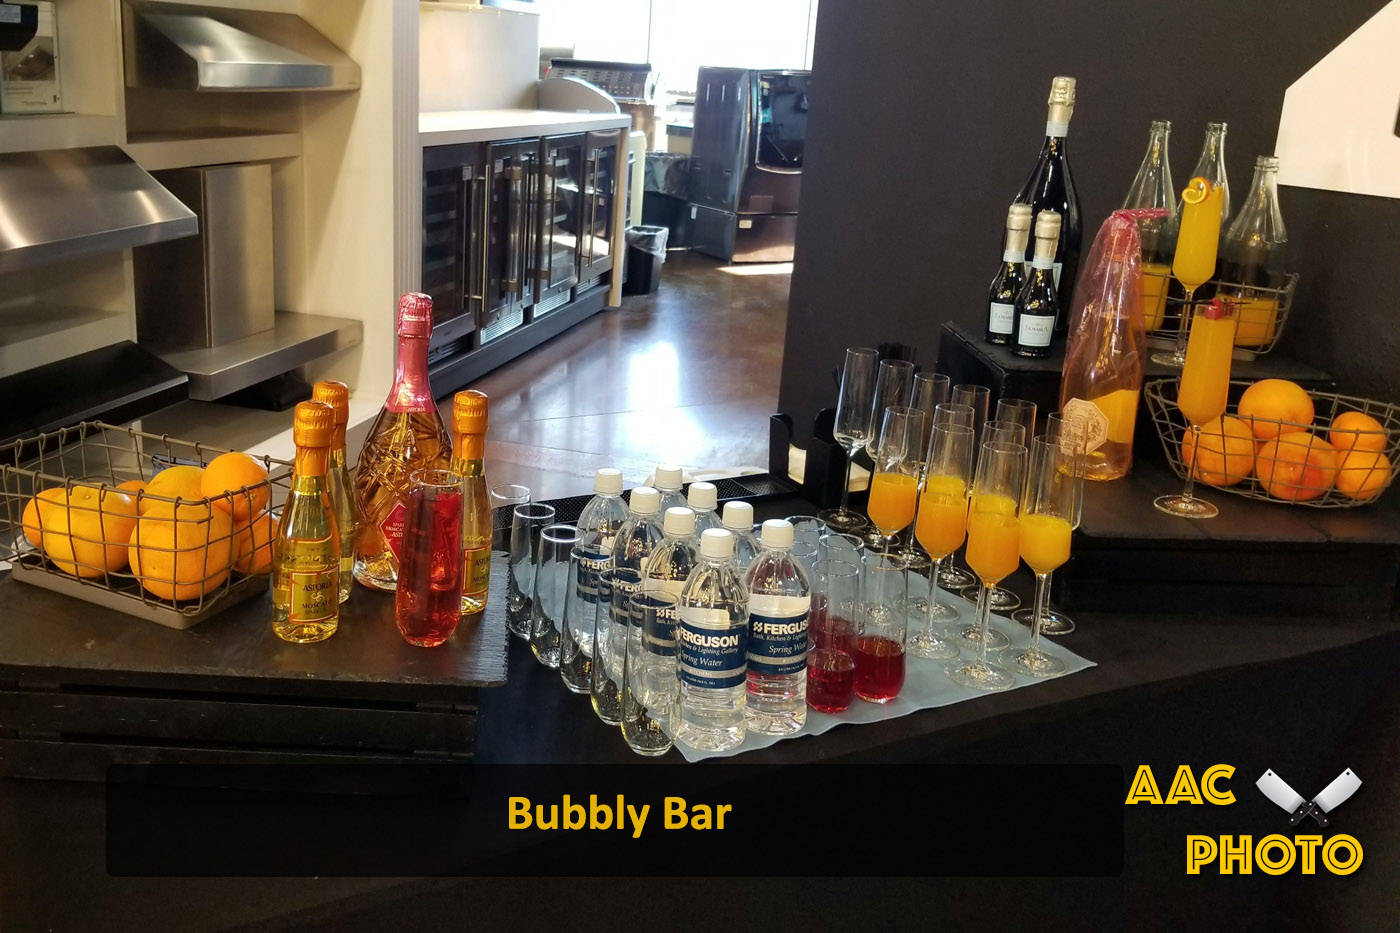 Bubbly Bar